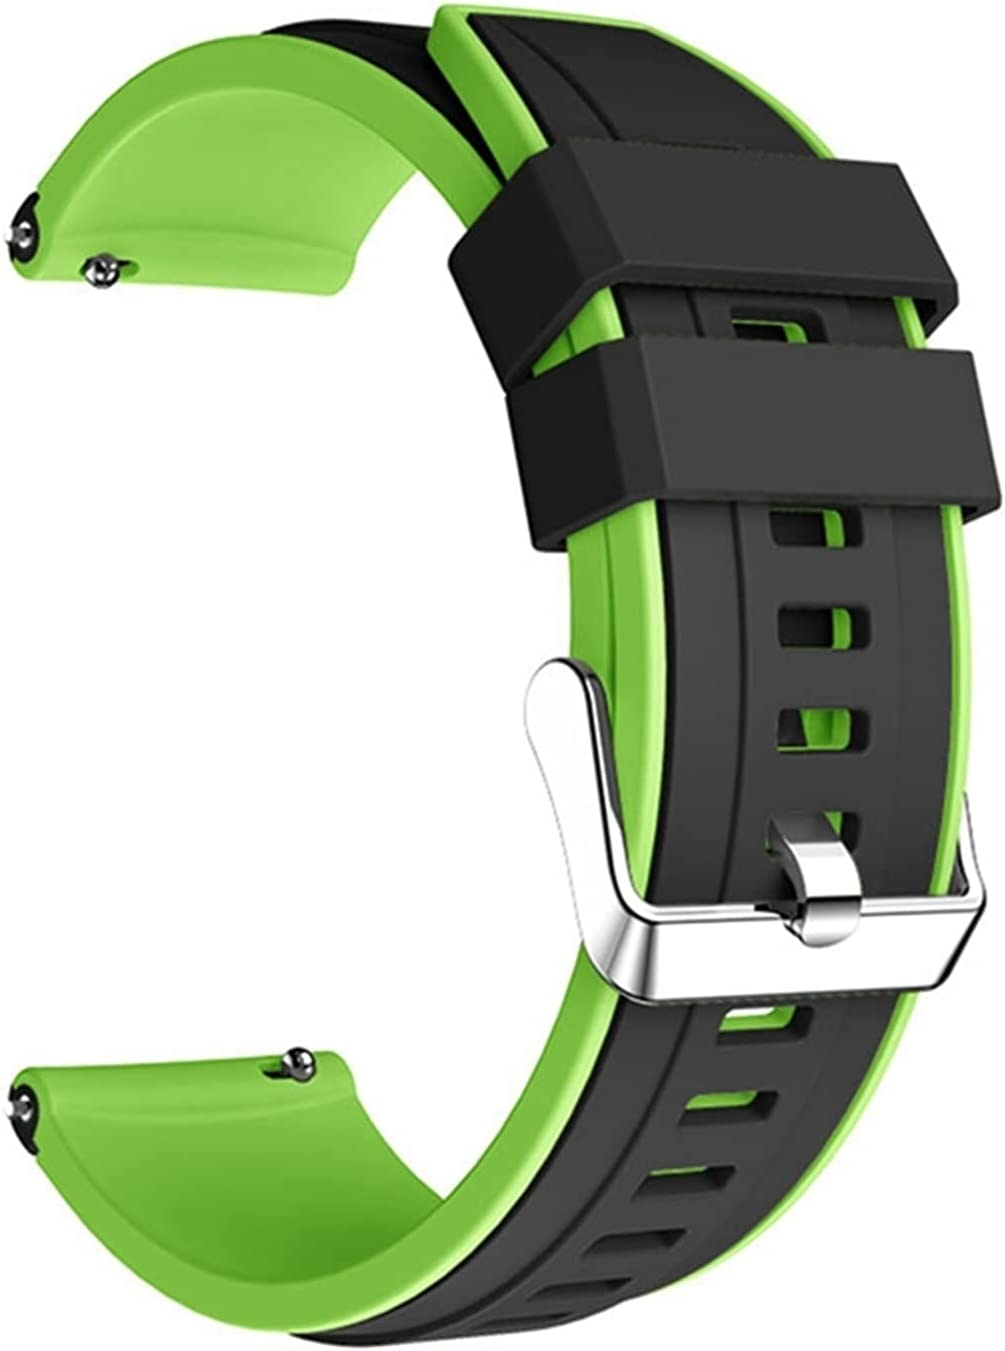 FAAGFC Watchband Strap for Huawei GT Watch Band 2 2e Max 86% OFF Smart New product! New type GT2e